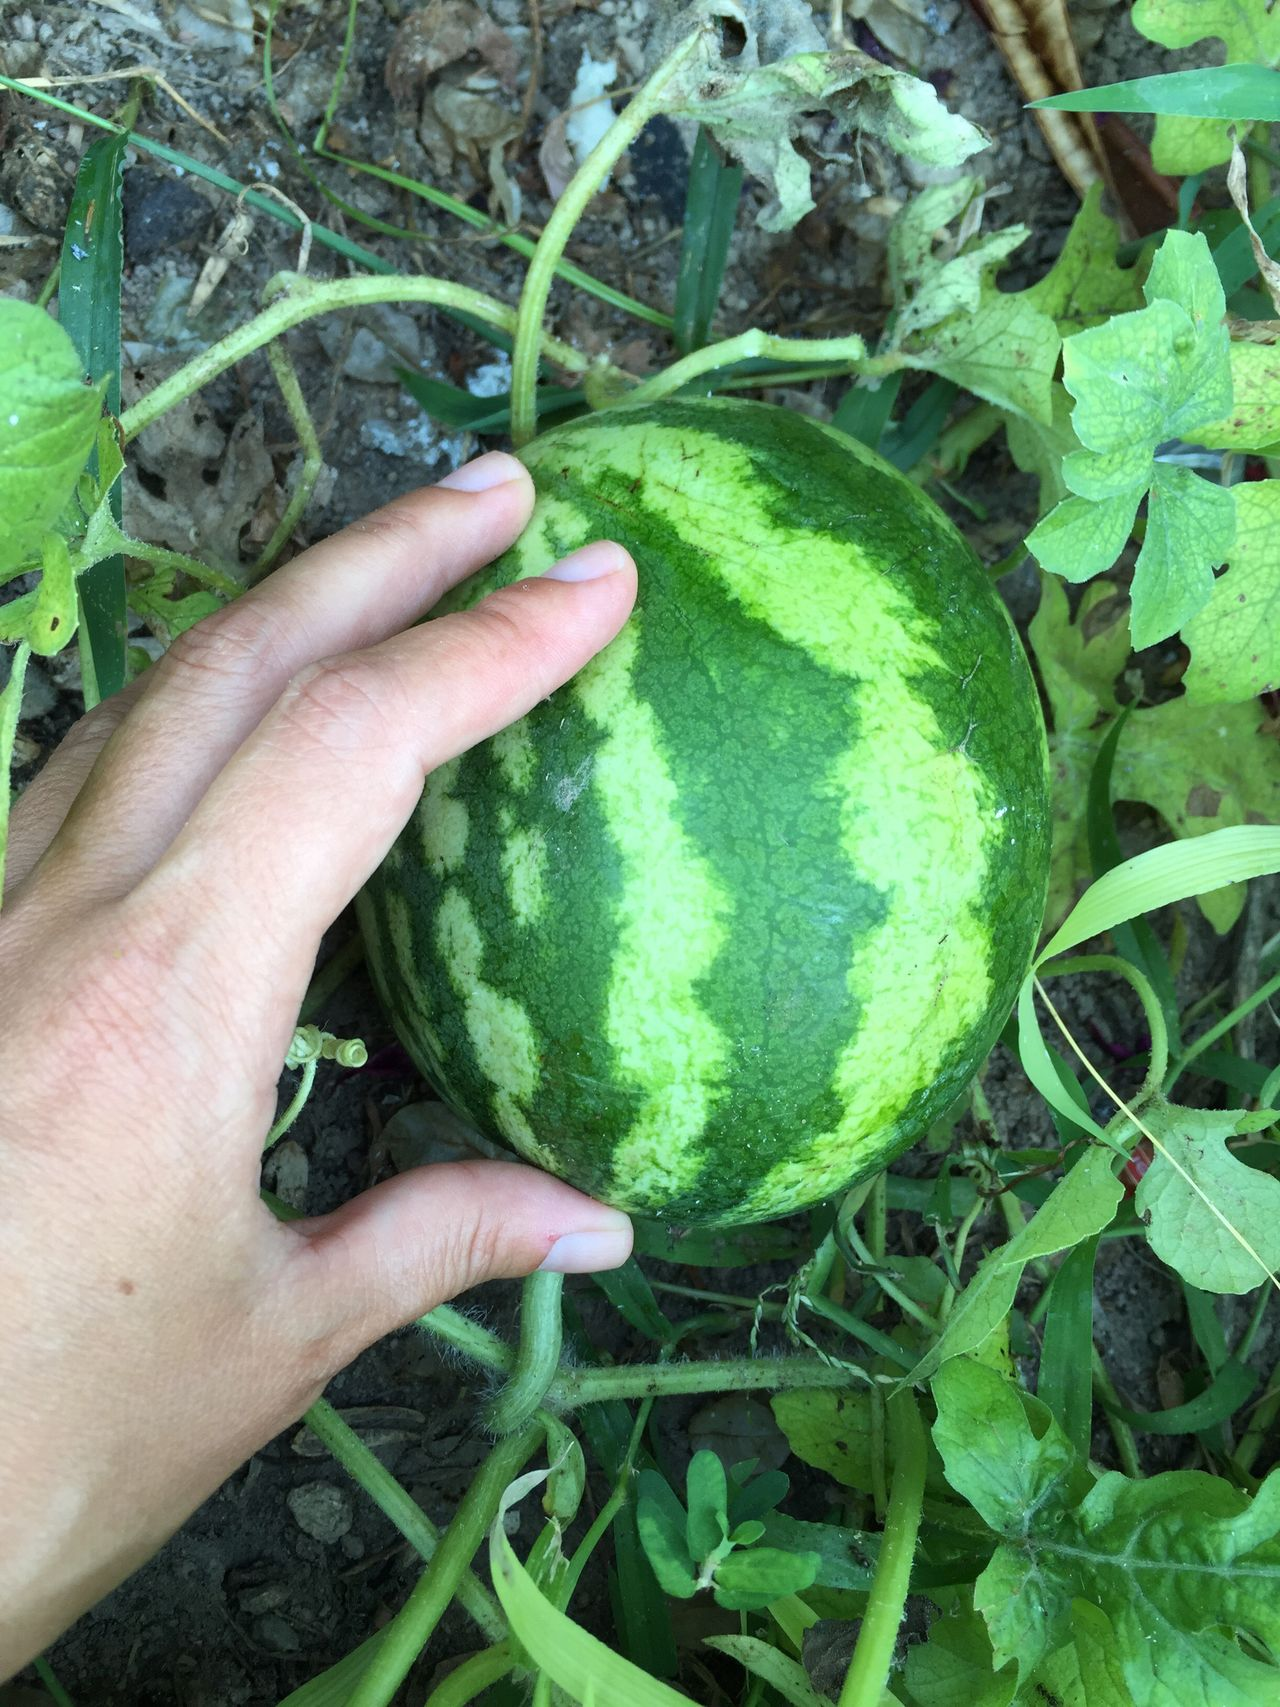 Watermelon Water Melon Green Food Plant Garden Greenery Nature Agriculture Hand Plants Growth Growing Fruit